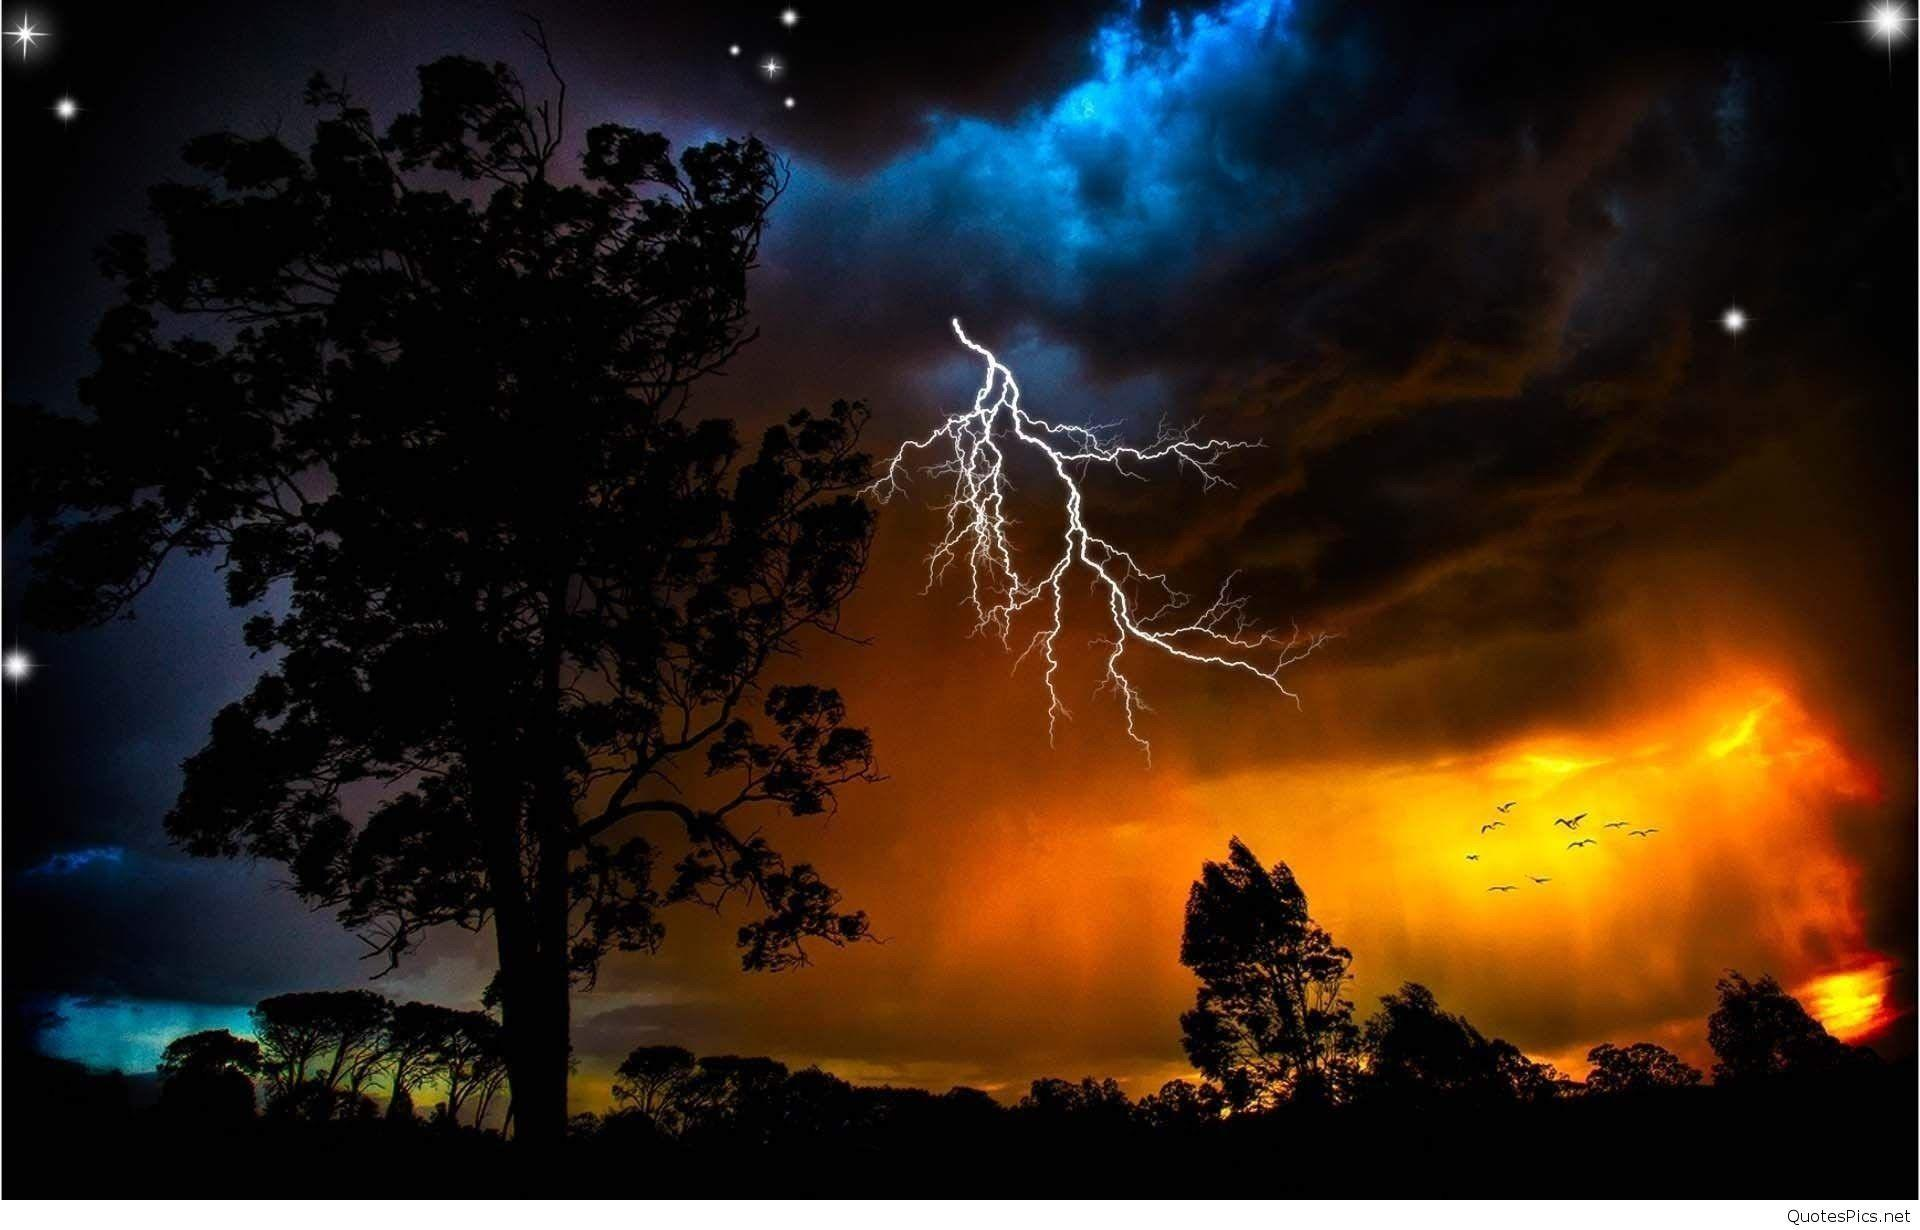 37 Lightening Wallpapers and Thunderstorm Wallpapers In HD Free Download